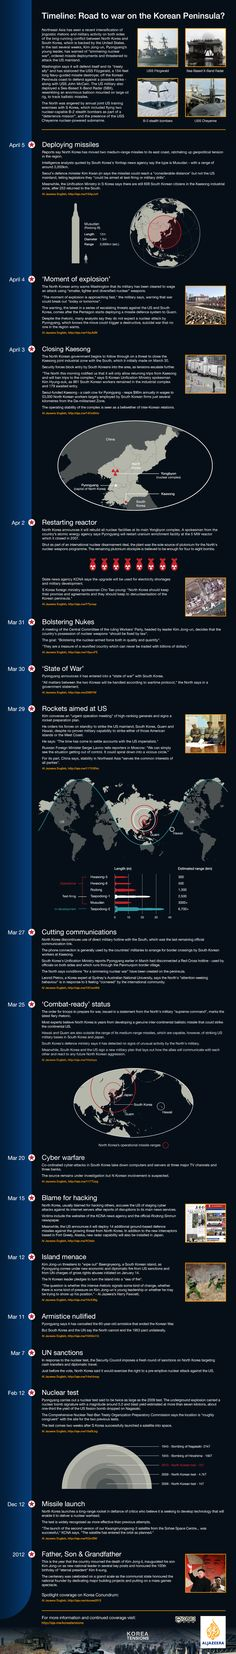 Infographic: Road to war on Korean Peninsula? Timeline of recent events in Northeast Asia shows major increase in threats between Pyongyang and its adversaries.